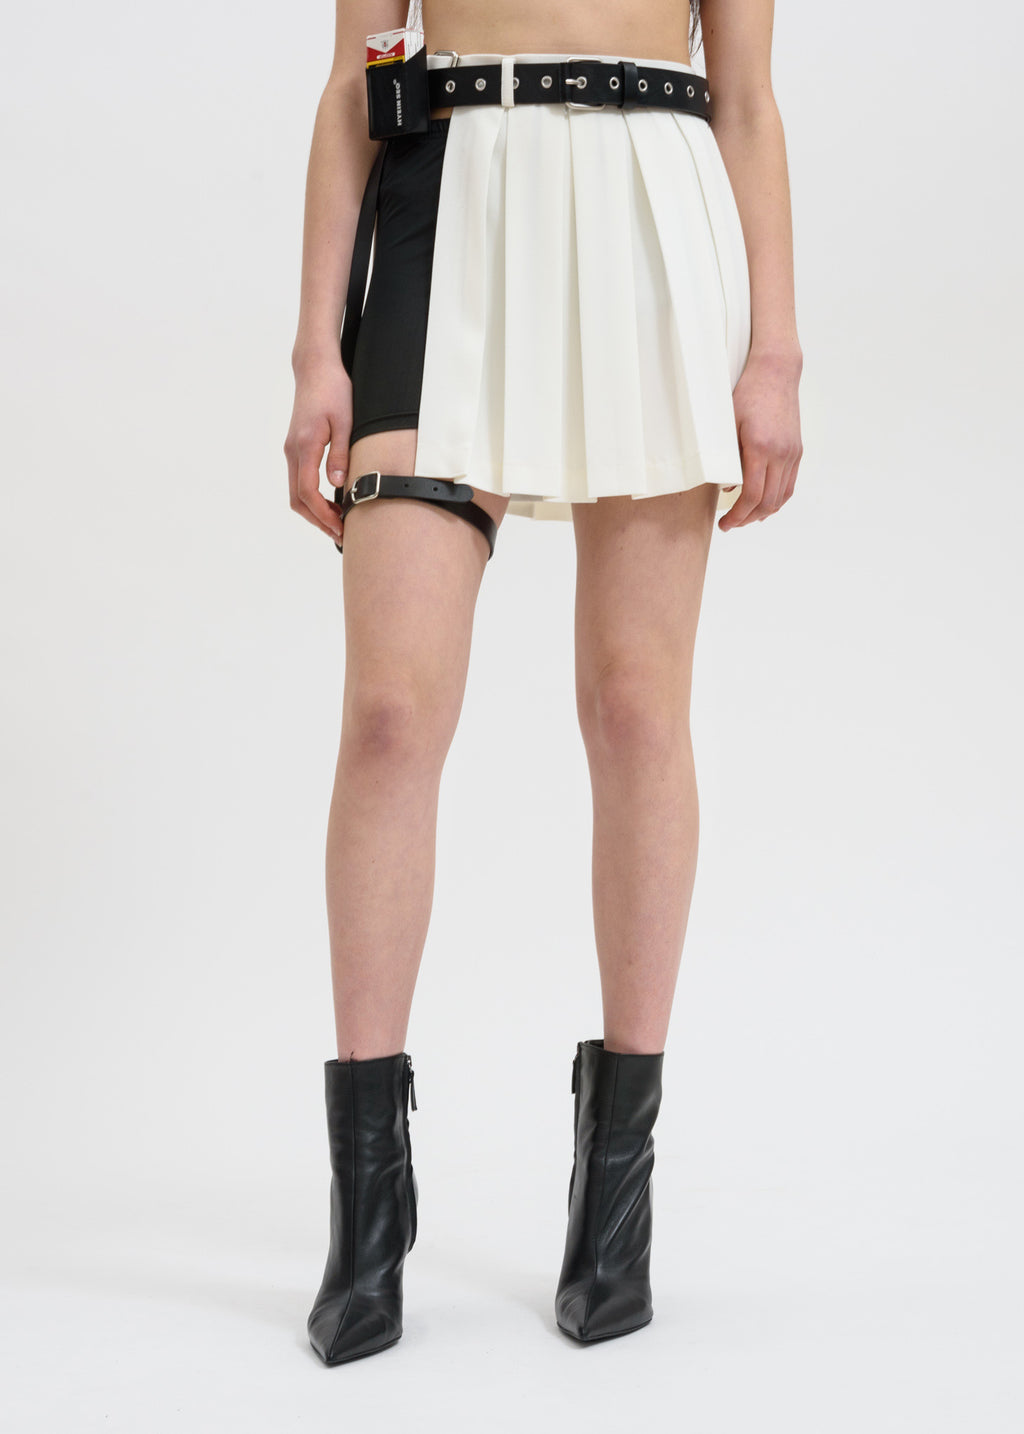 White Pleated Skirt w/ Garter Belt